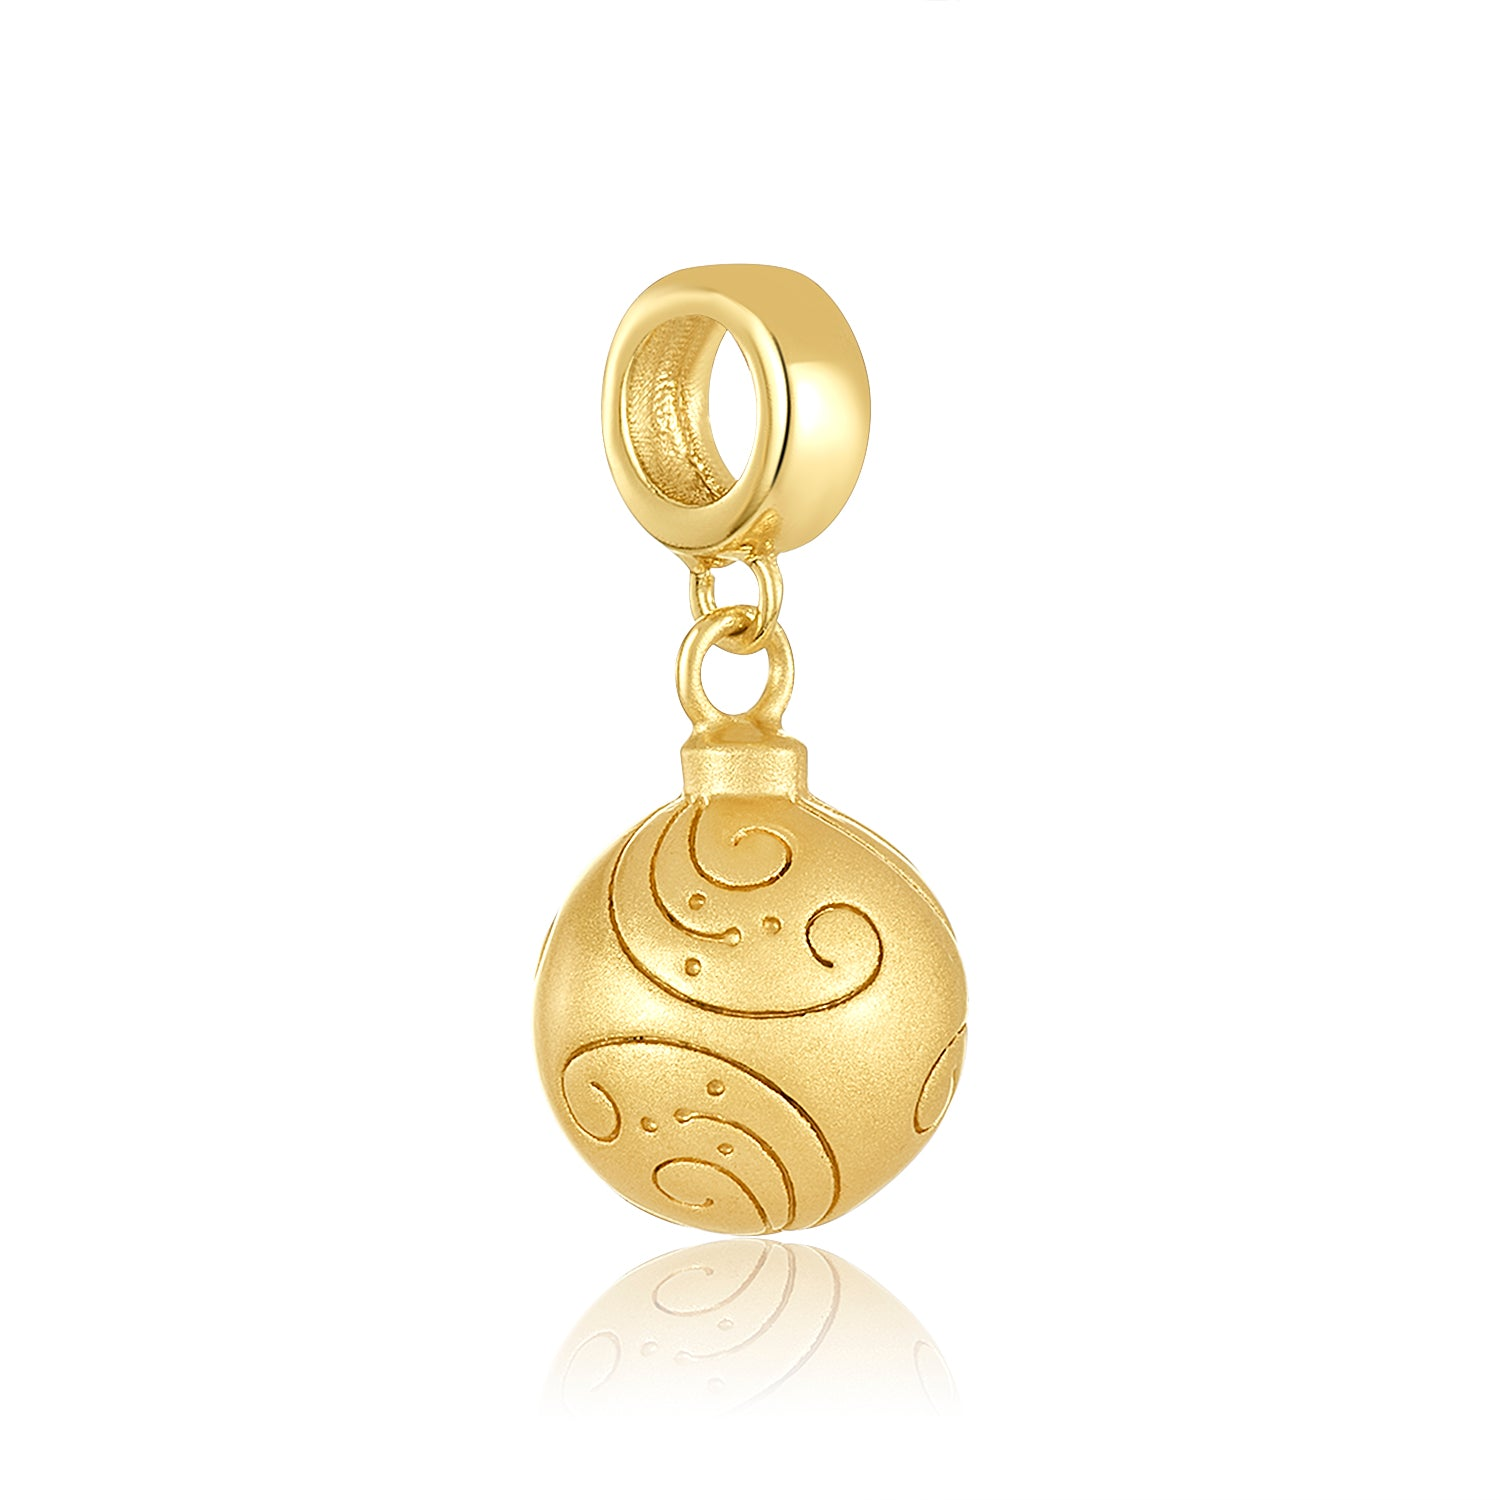 Gold Christmas ornament charm for use with DBW interchangeable charm bracelets.